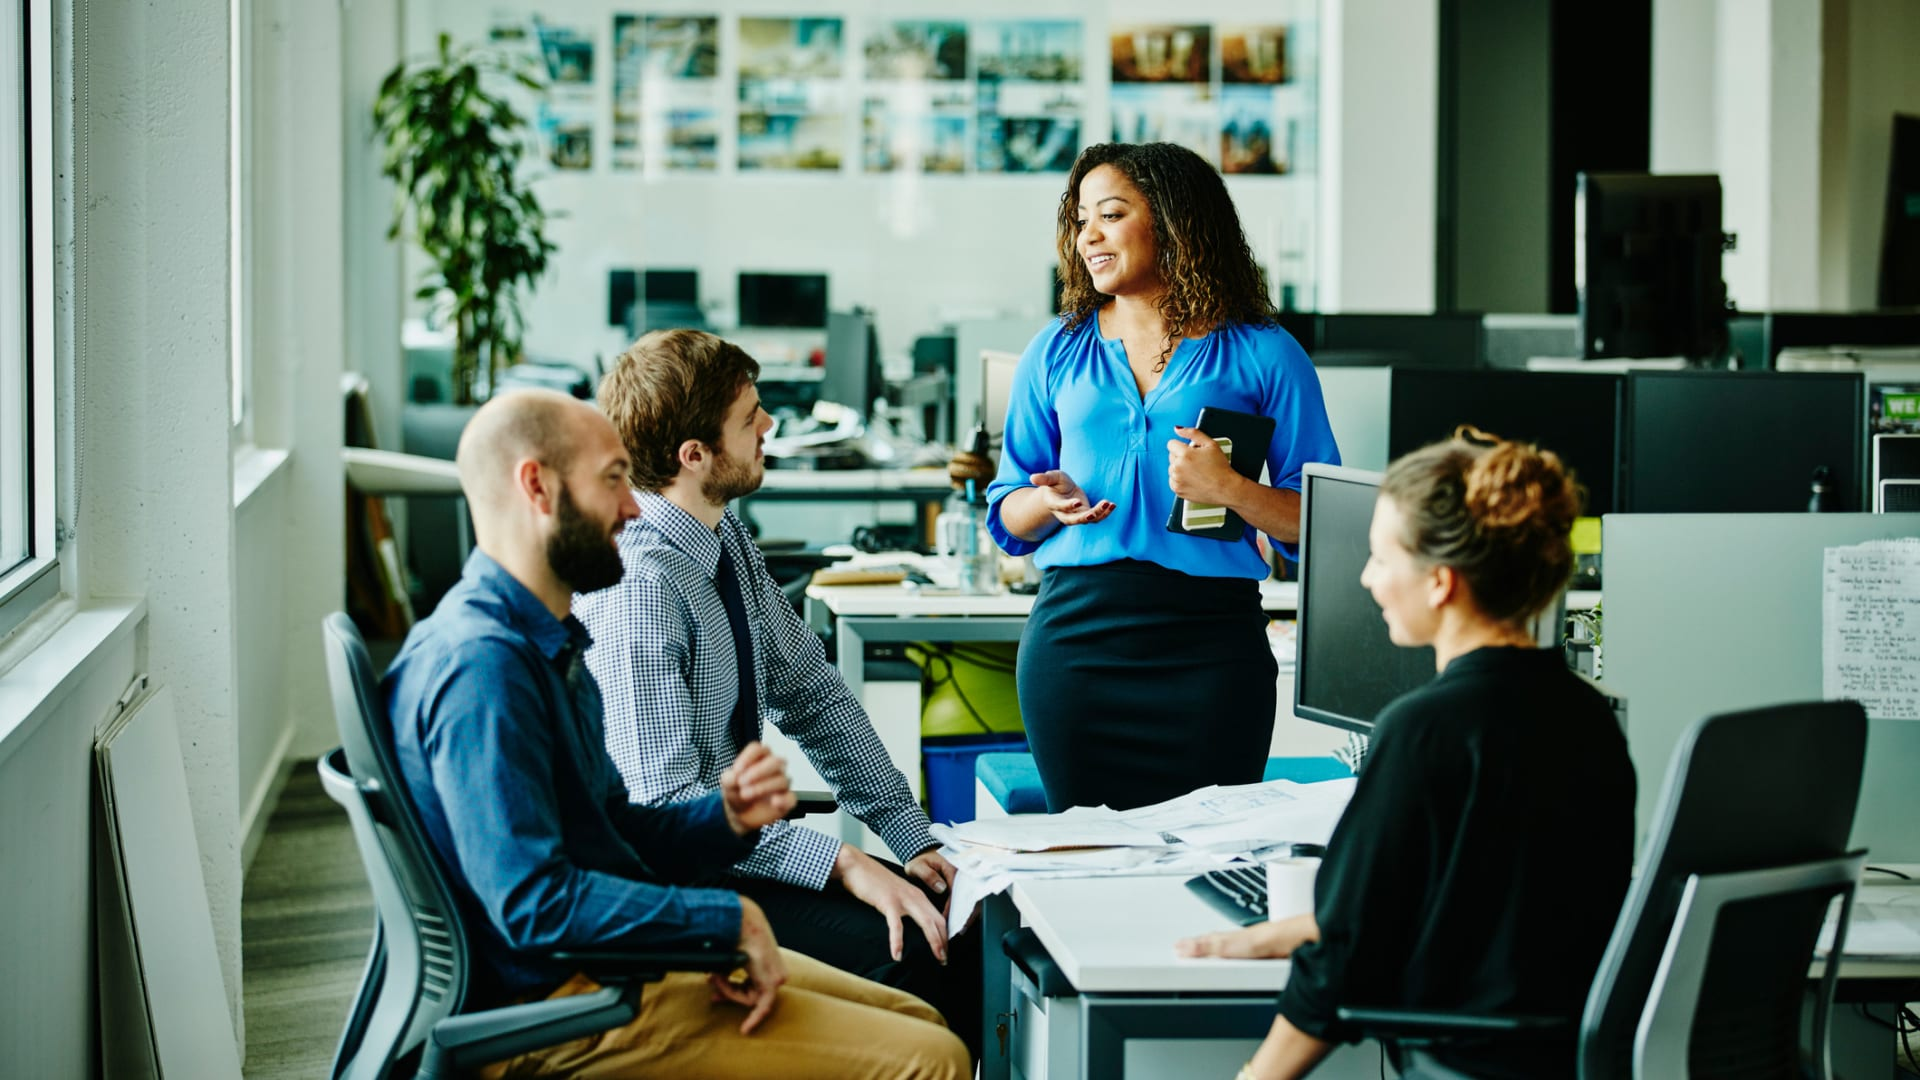 7 Things You Should Say to Your Team More Often to Inspire Them